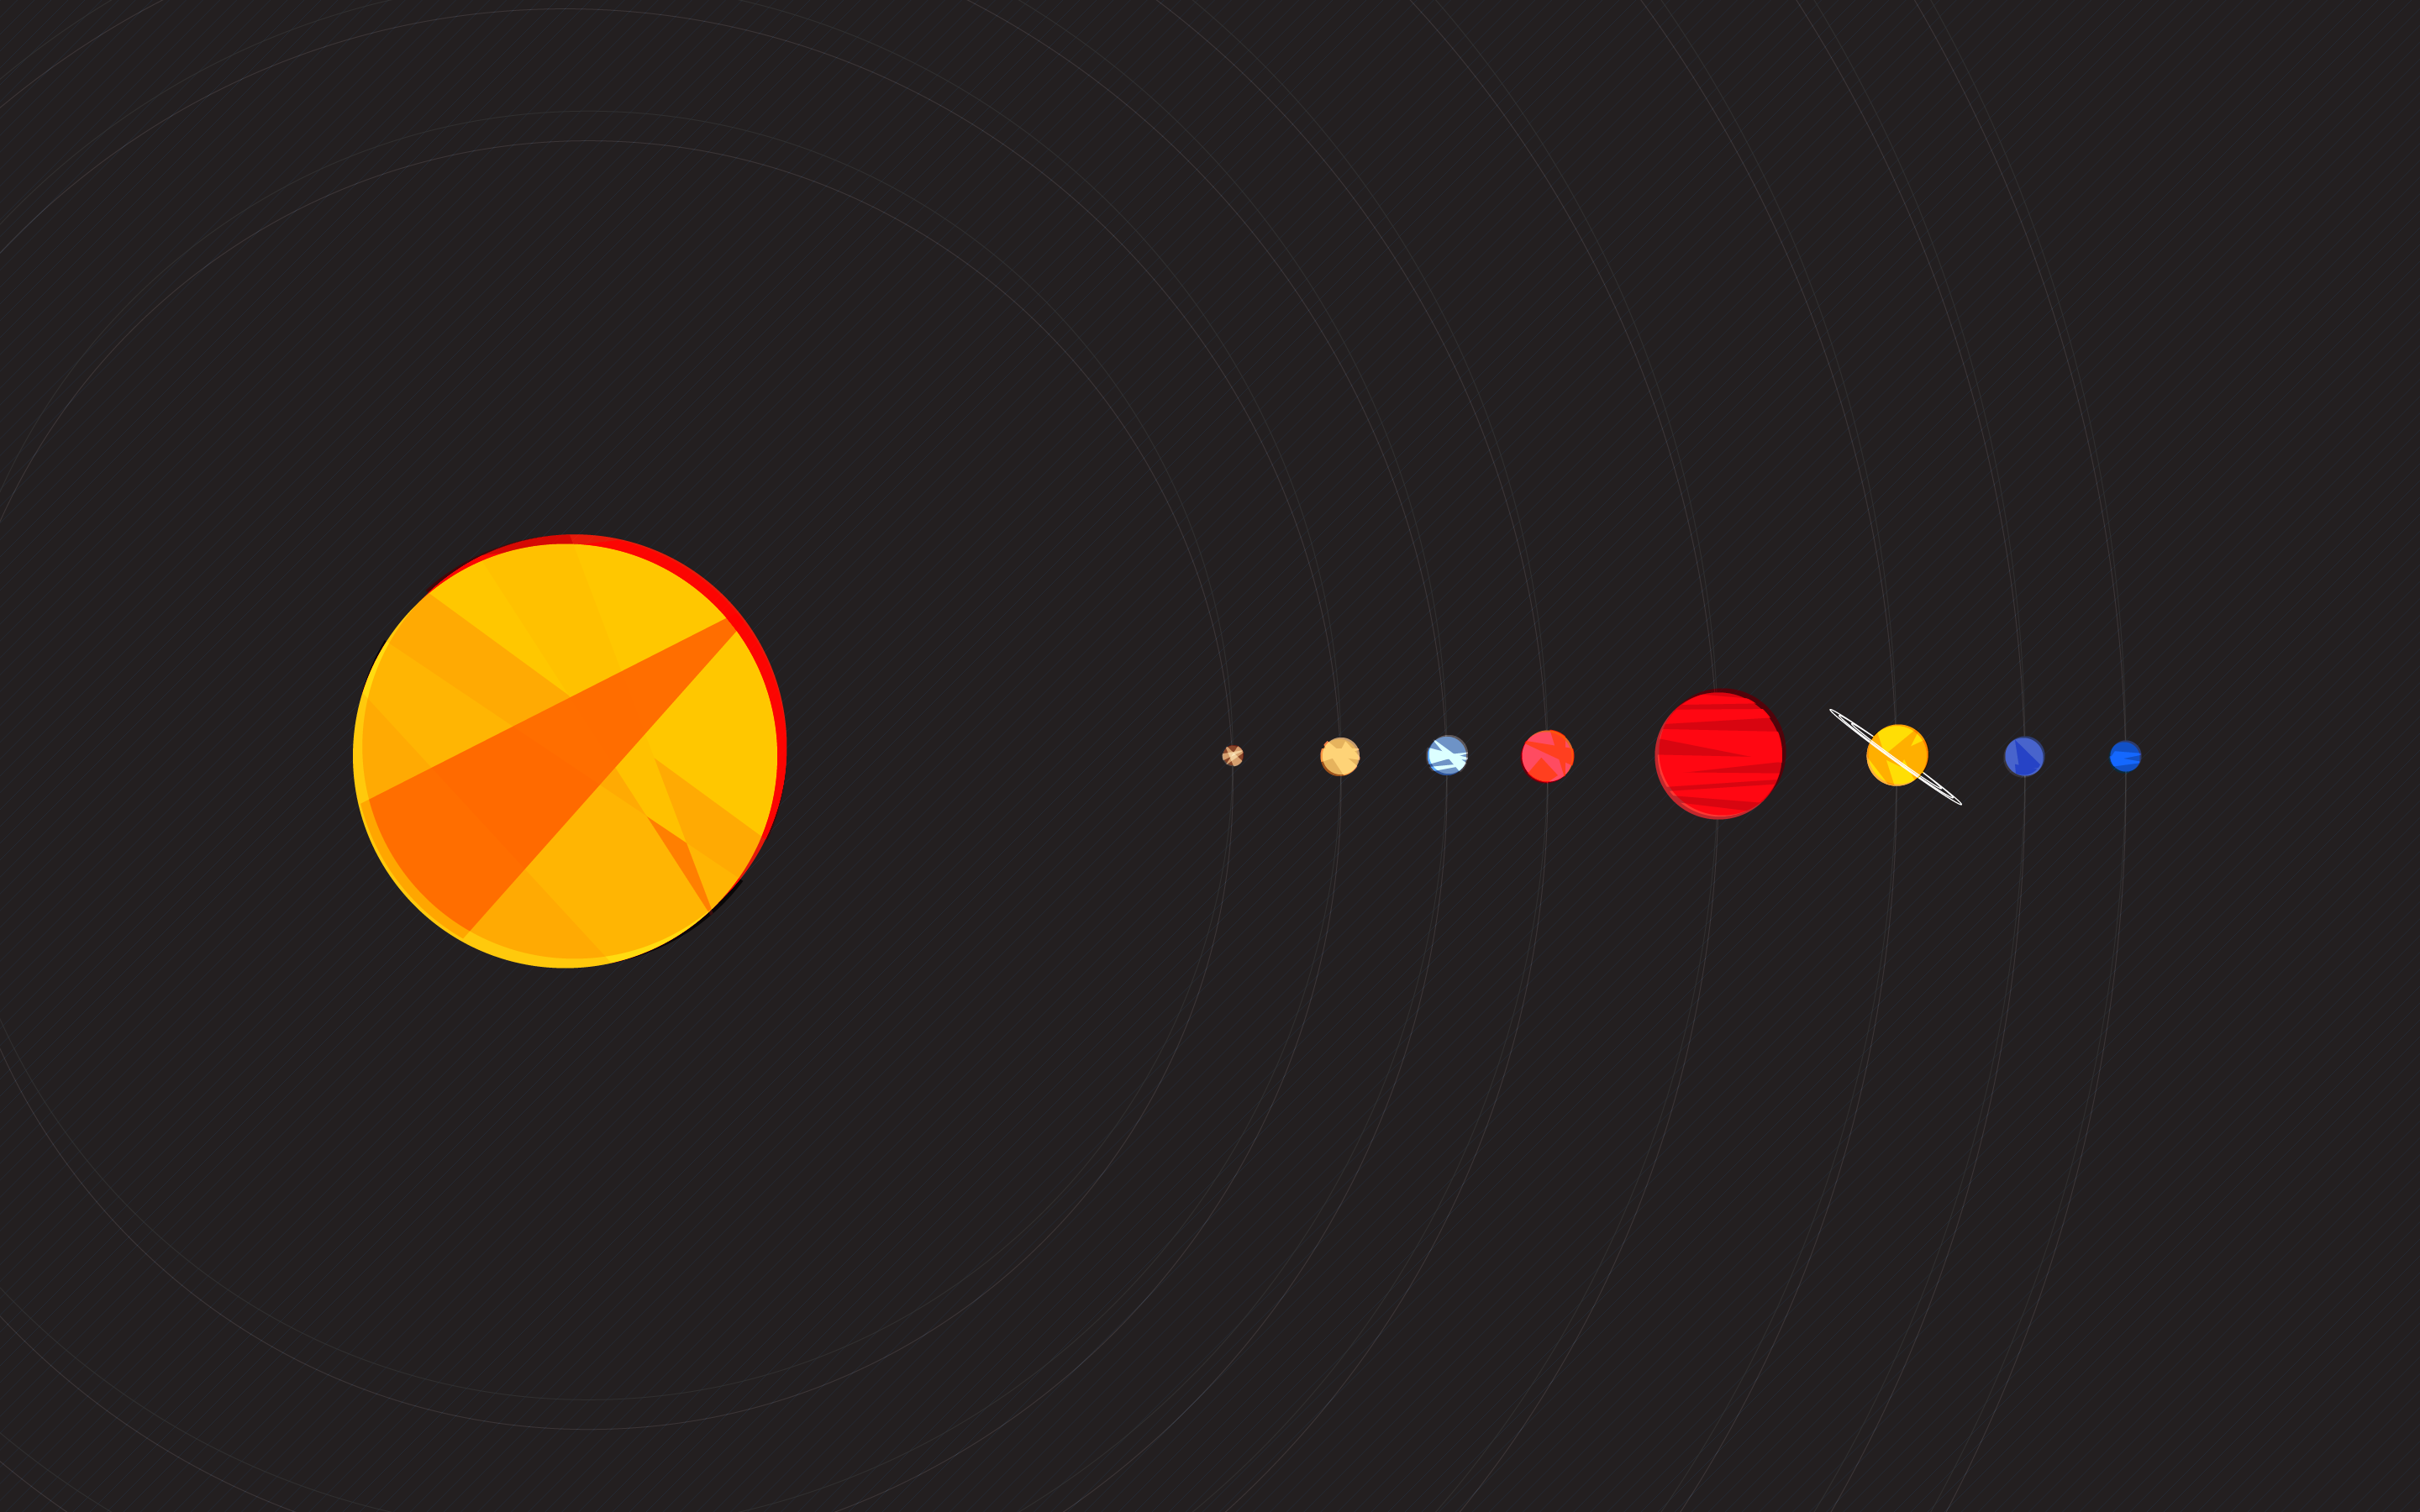 planets solar system wallpaper 1920x1200 - photo #25